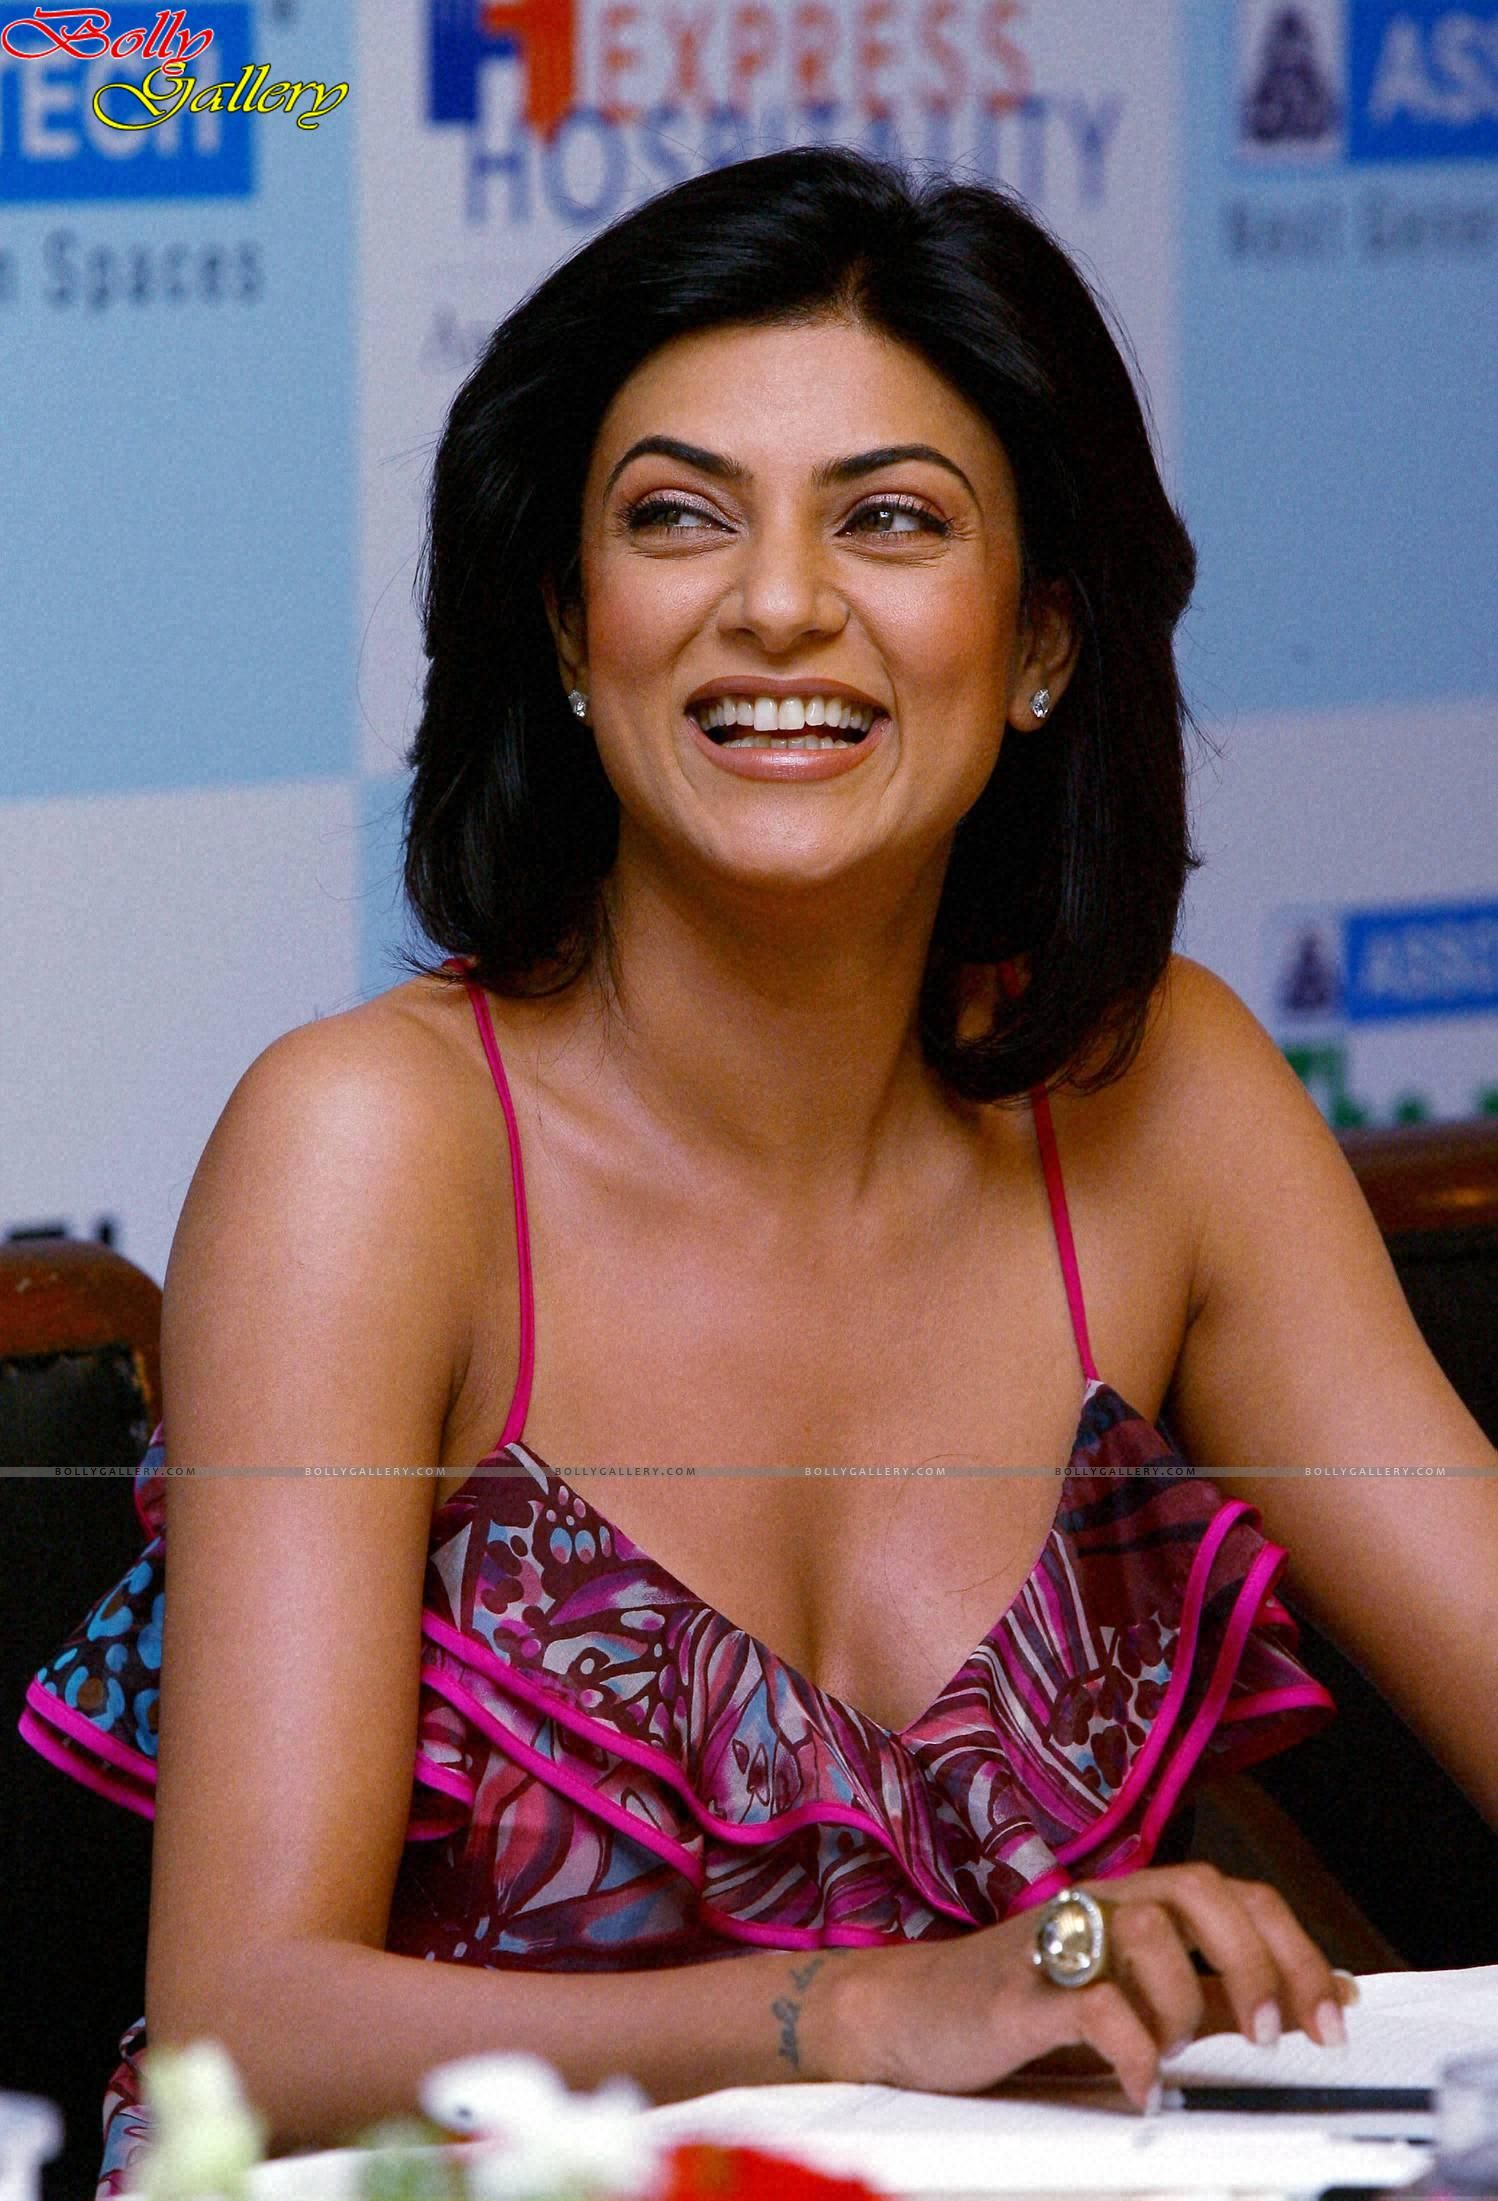 sushmita sen songsushmita sen 2016, sushmita sen instagram, sushmita sen wikipedia, sushmita sen main hoon na, sushmita sen dilbar dilbar, sushmita sen daughters, sushmita sen films, sushmita sen movies, sushmita sen mp3, sushmita sen 1997, sushmita sen photoshoot, sushmita sen interview, sushmita sen photo, sushmita sen biography wikipedia, sushmita sen song, sushmita sen saree, sushmita sen wiki, sushmita sen miss universe, sushmita sen dance songs, sushmita sen new movie